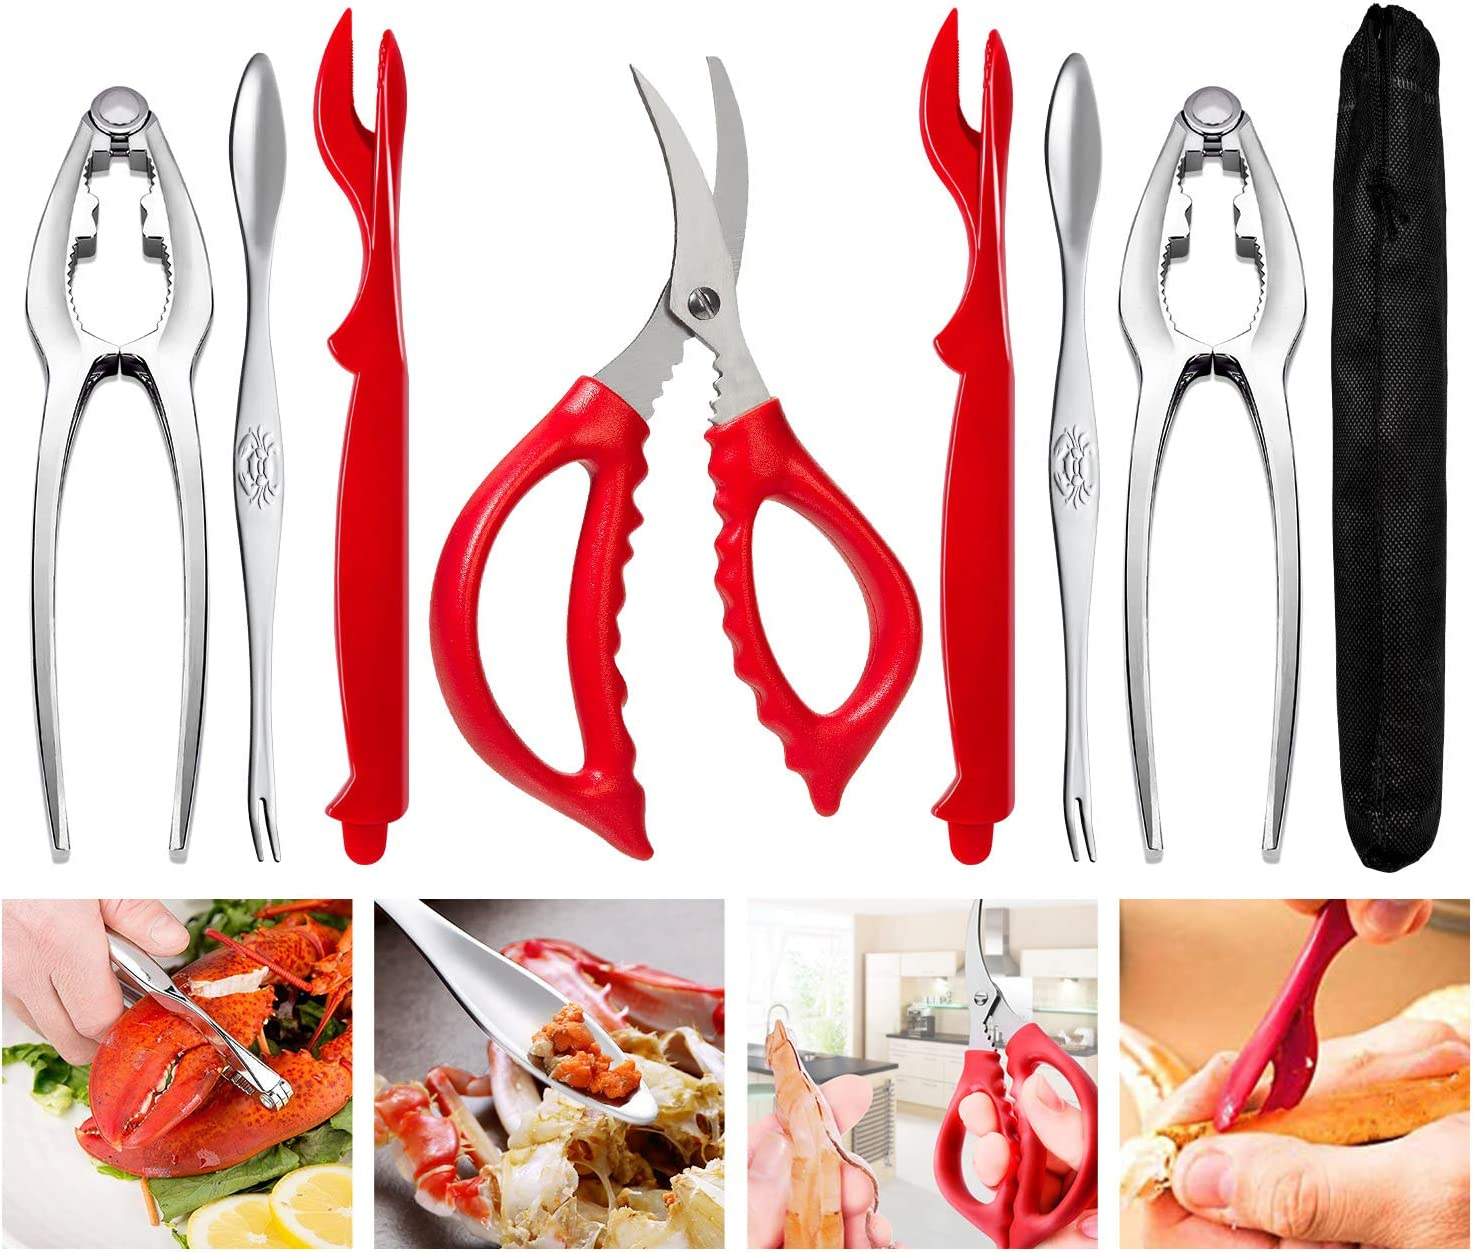 4 Crab Leg Forks//Picks 4 Lobster Sheller Knives 10 PCS Seafood Tools Crab Leg Crackers and Tools Including 2 Lobster Crab Crackers